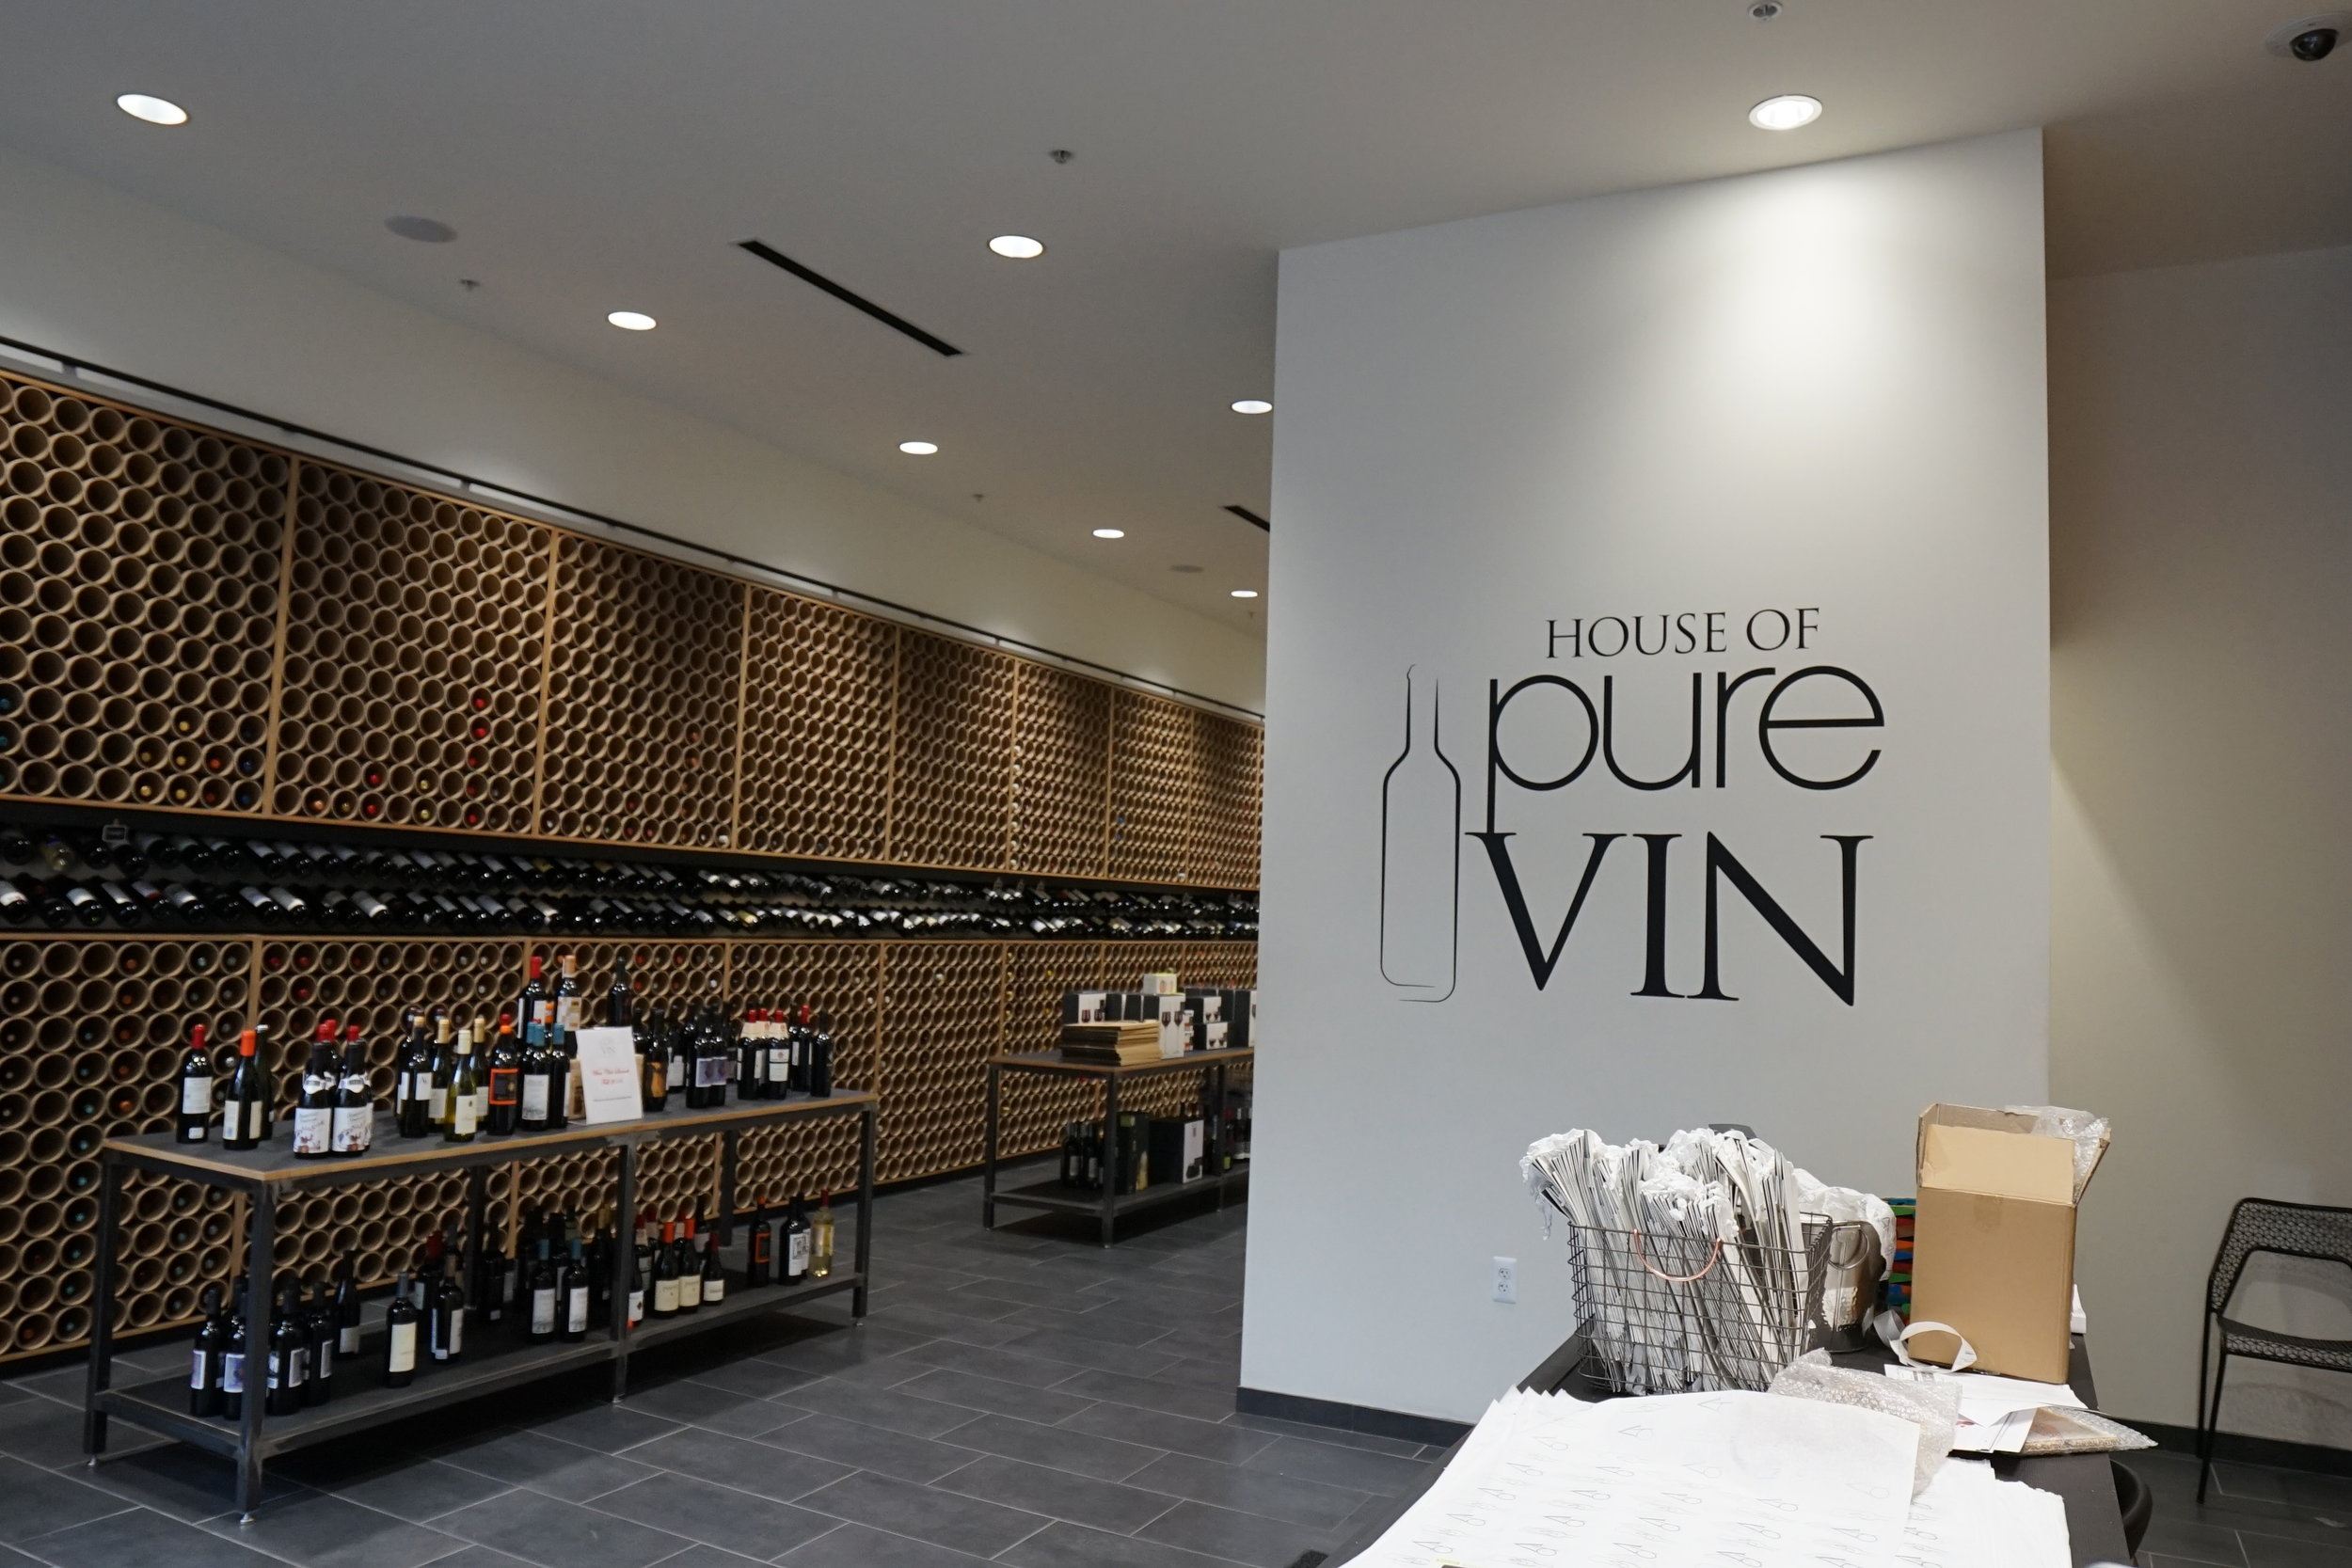 House of Pure Vin  1433 Woodward Ave, Detroit, MI 48226